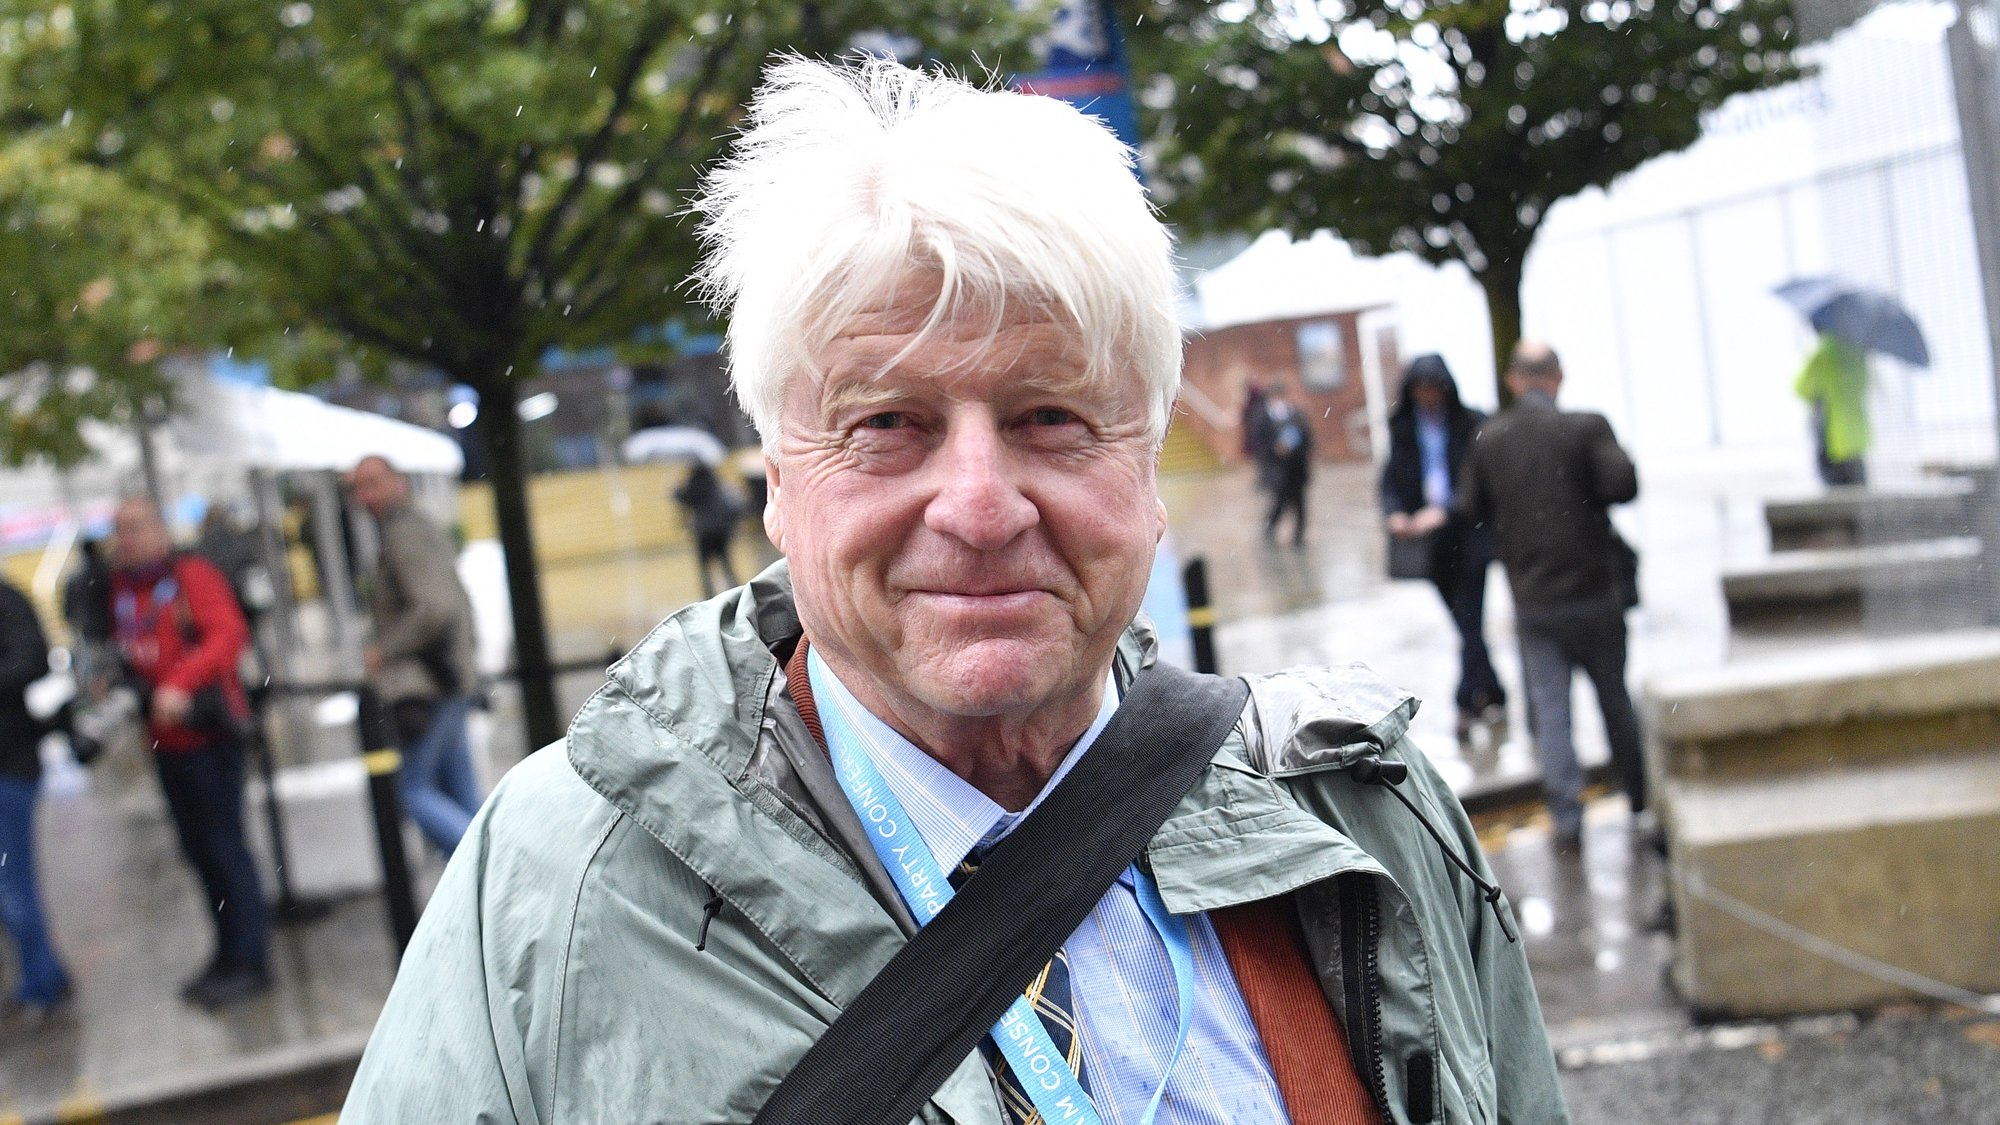 epa07884688 Stanley Johnson, the father of Britain's Prime Minister Boris Johnson attends the Conservative Party Conference in Manchester, Britain, 01 October 2019. The Conservative Party Conference runs from 29 September to 02 October 2019.  EPA/NEIL HALL